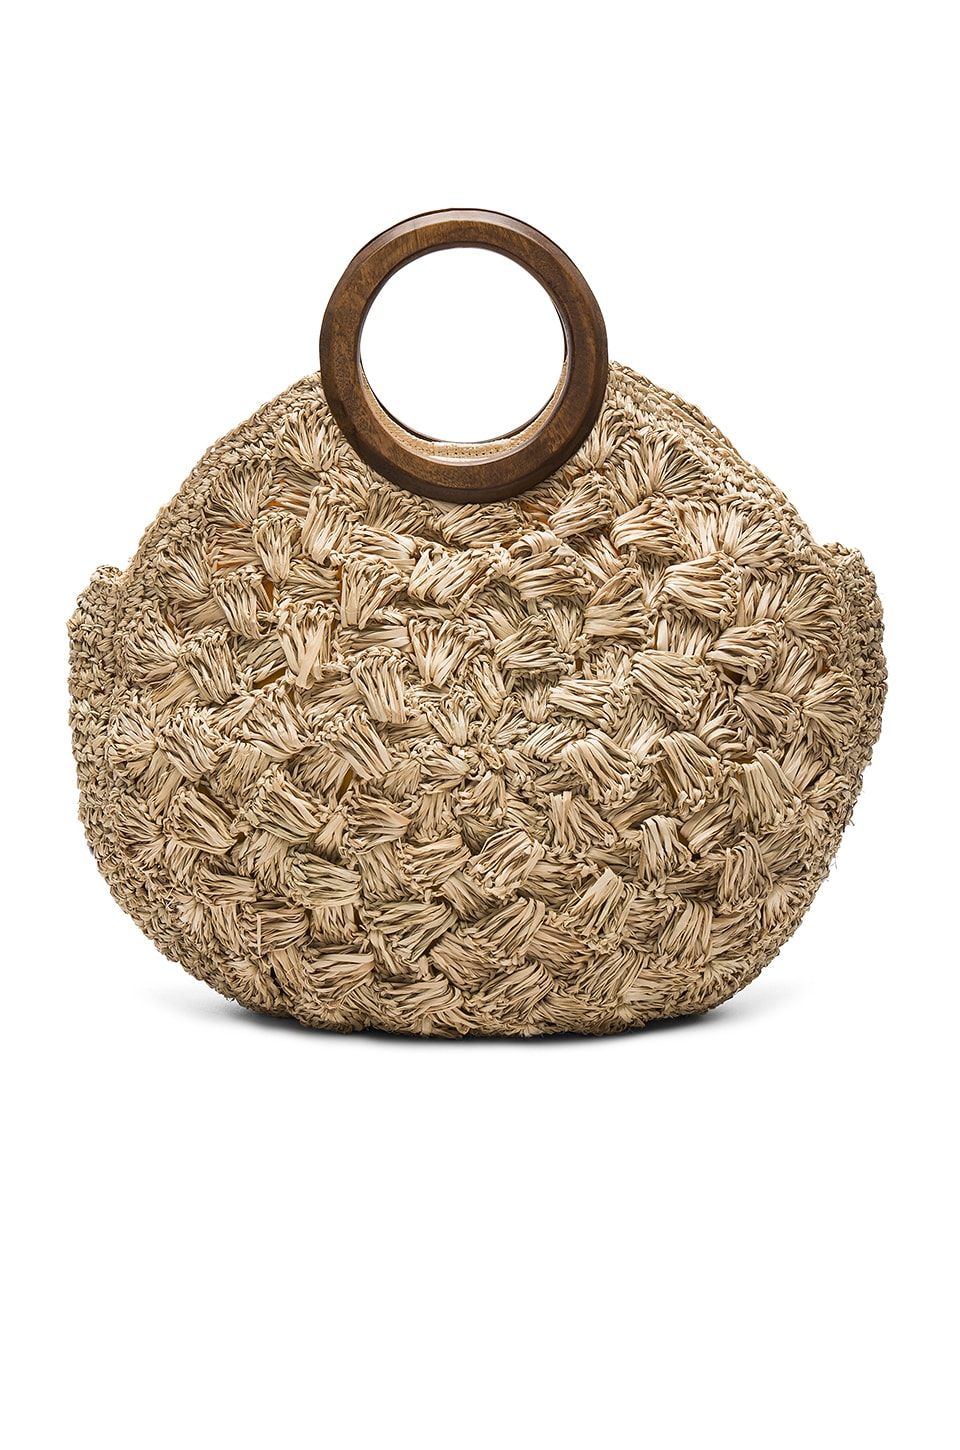 KAYU Coco Bag in Natural